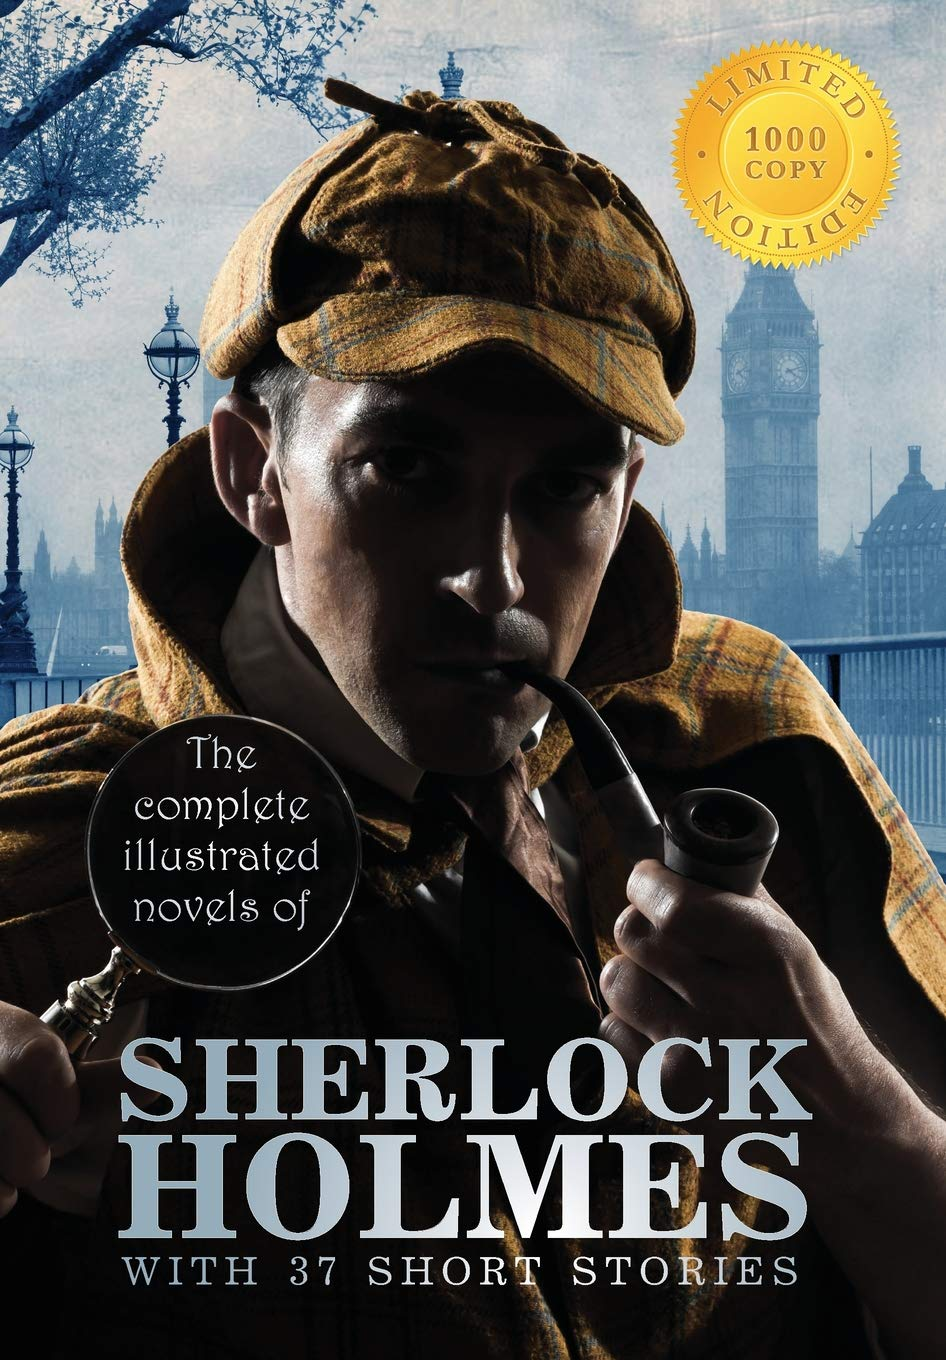 The Complete Illustrated Novels of Sherlock Holmes with 37 Short Stories (1000 Copy Limited Edition)